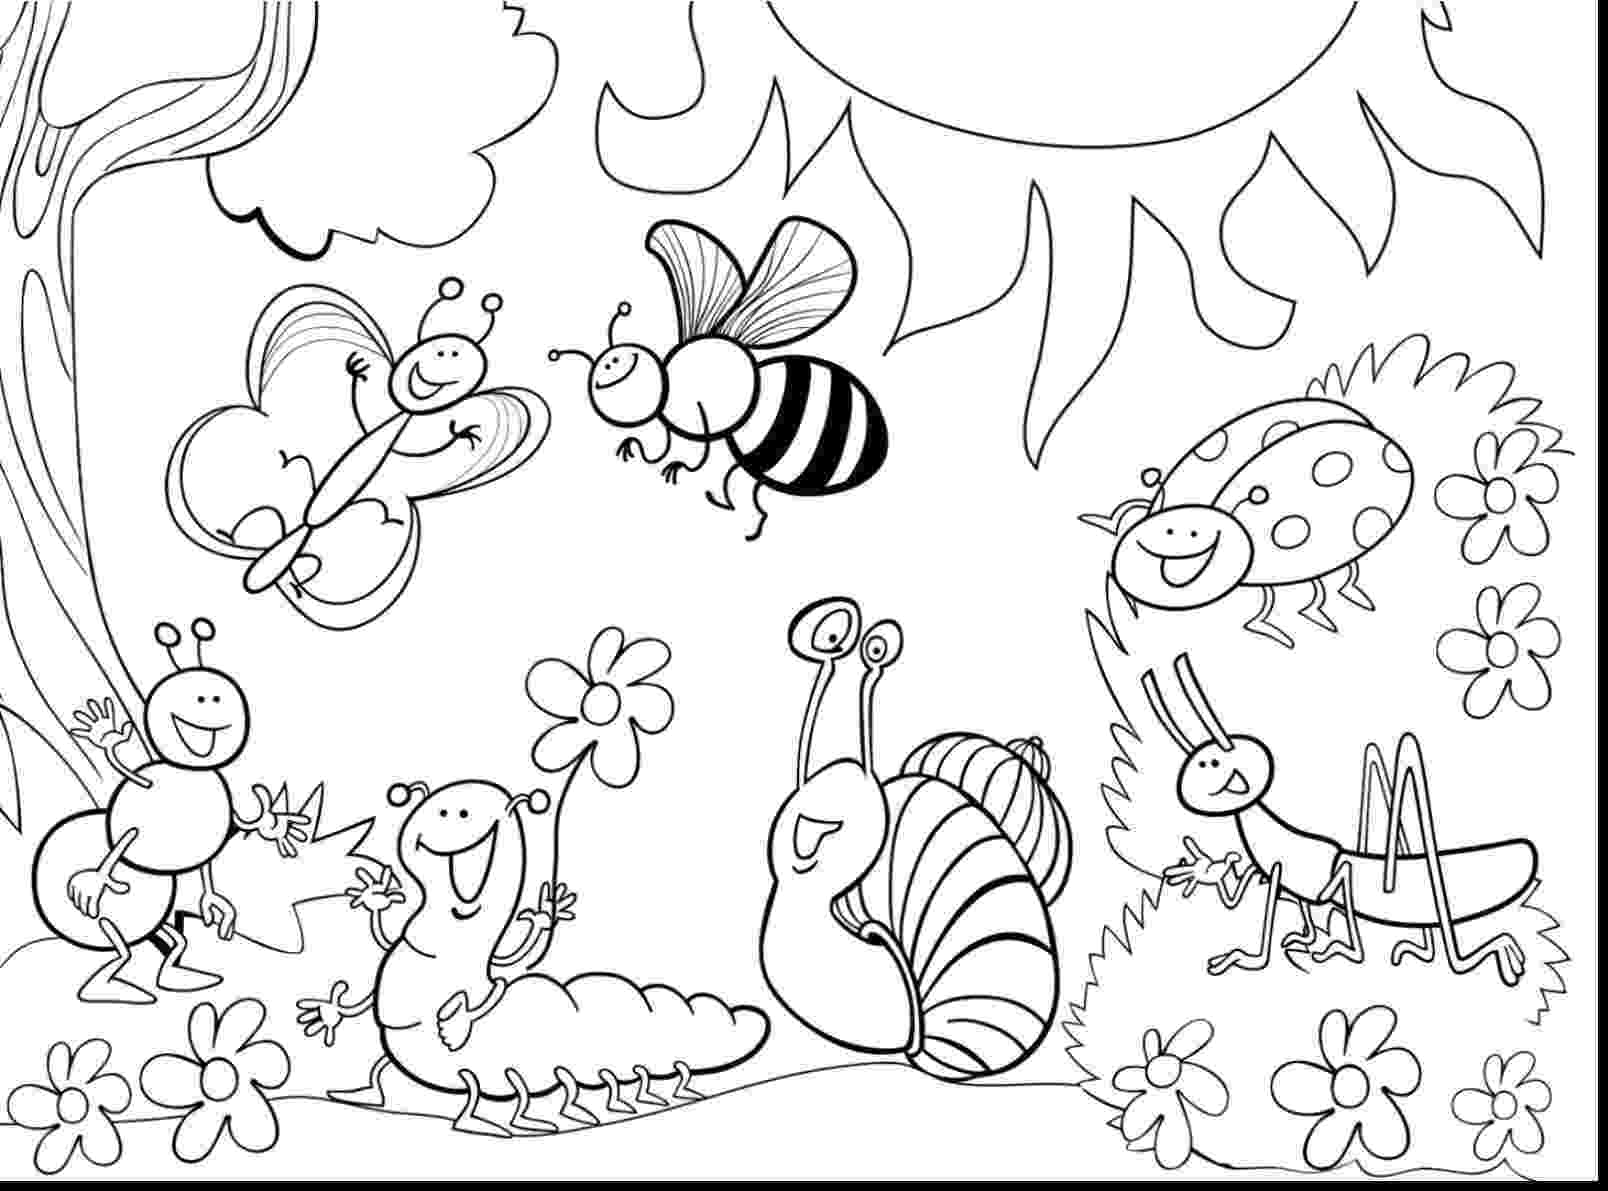 insects for coloring bug coloring pages bugs print new school ideas garden for coloring insects